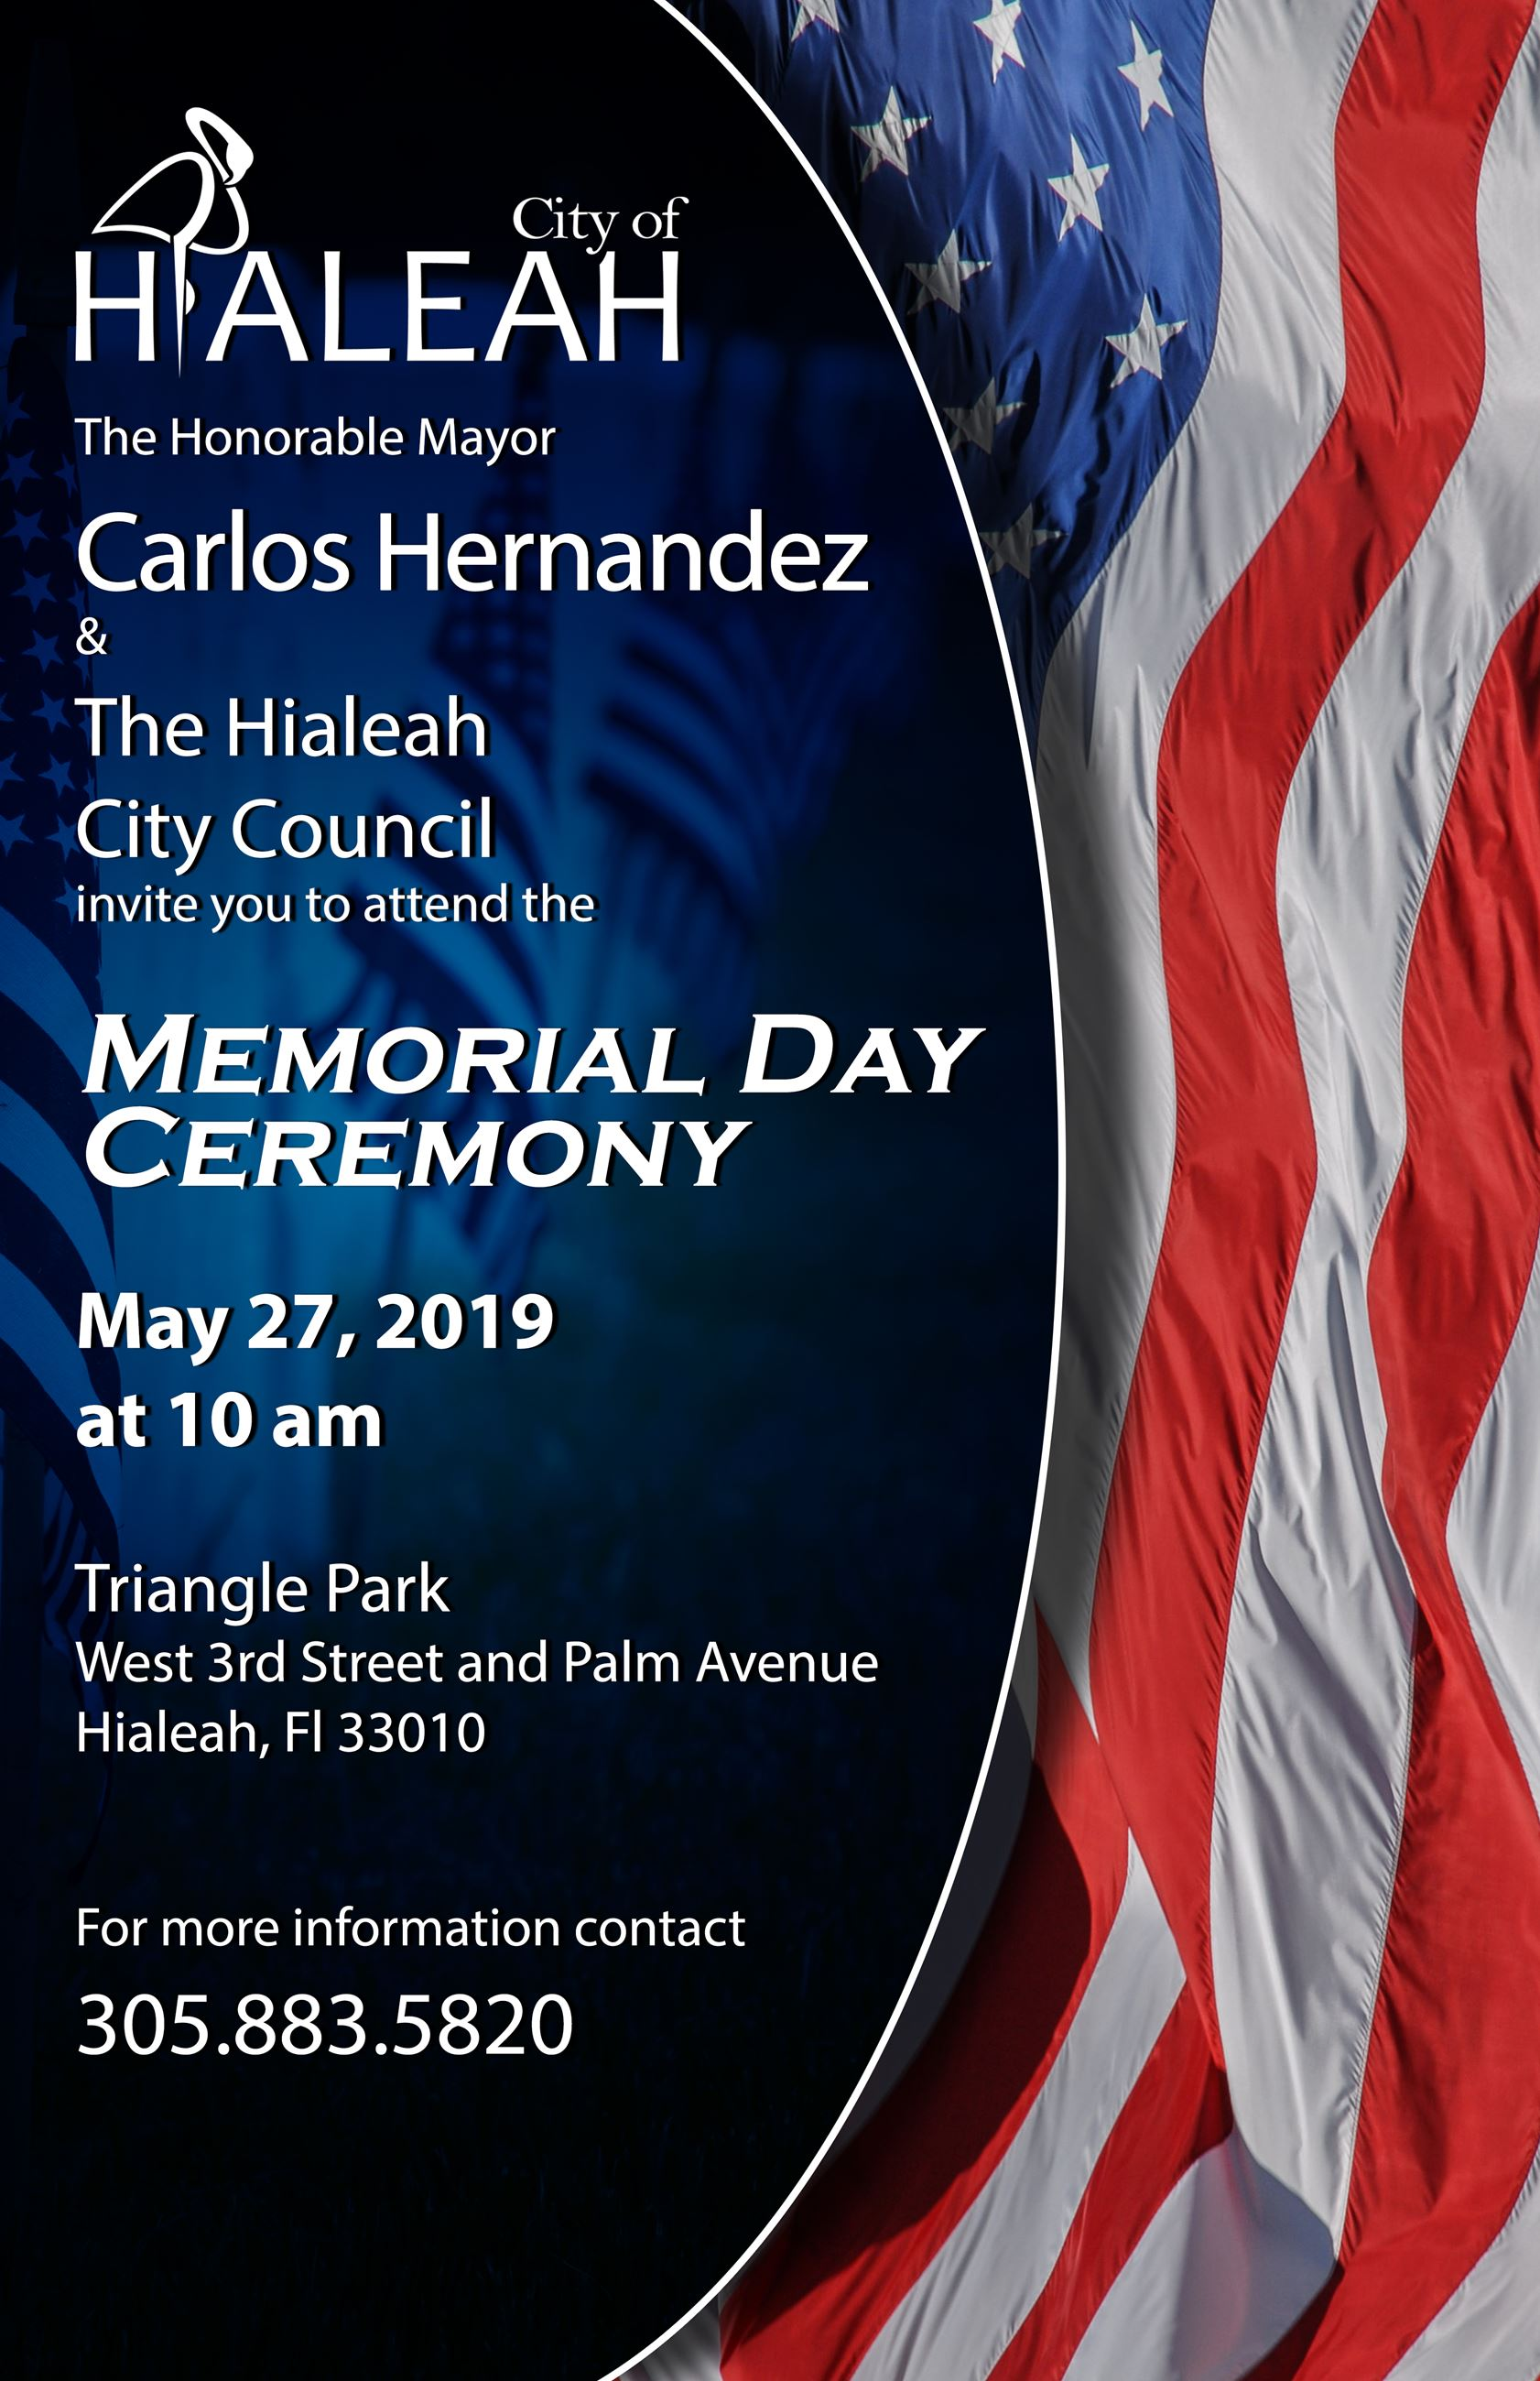 Poster of the memorial day ceremony event